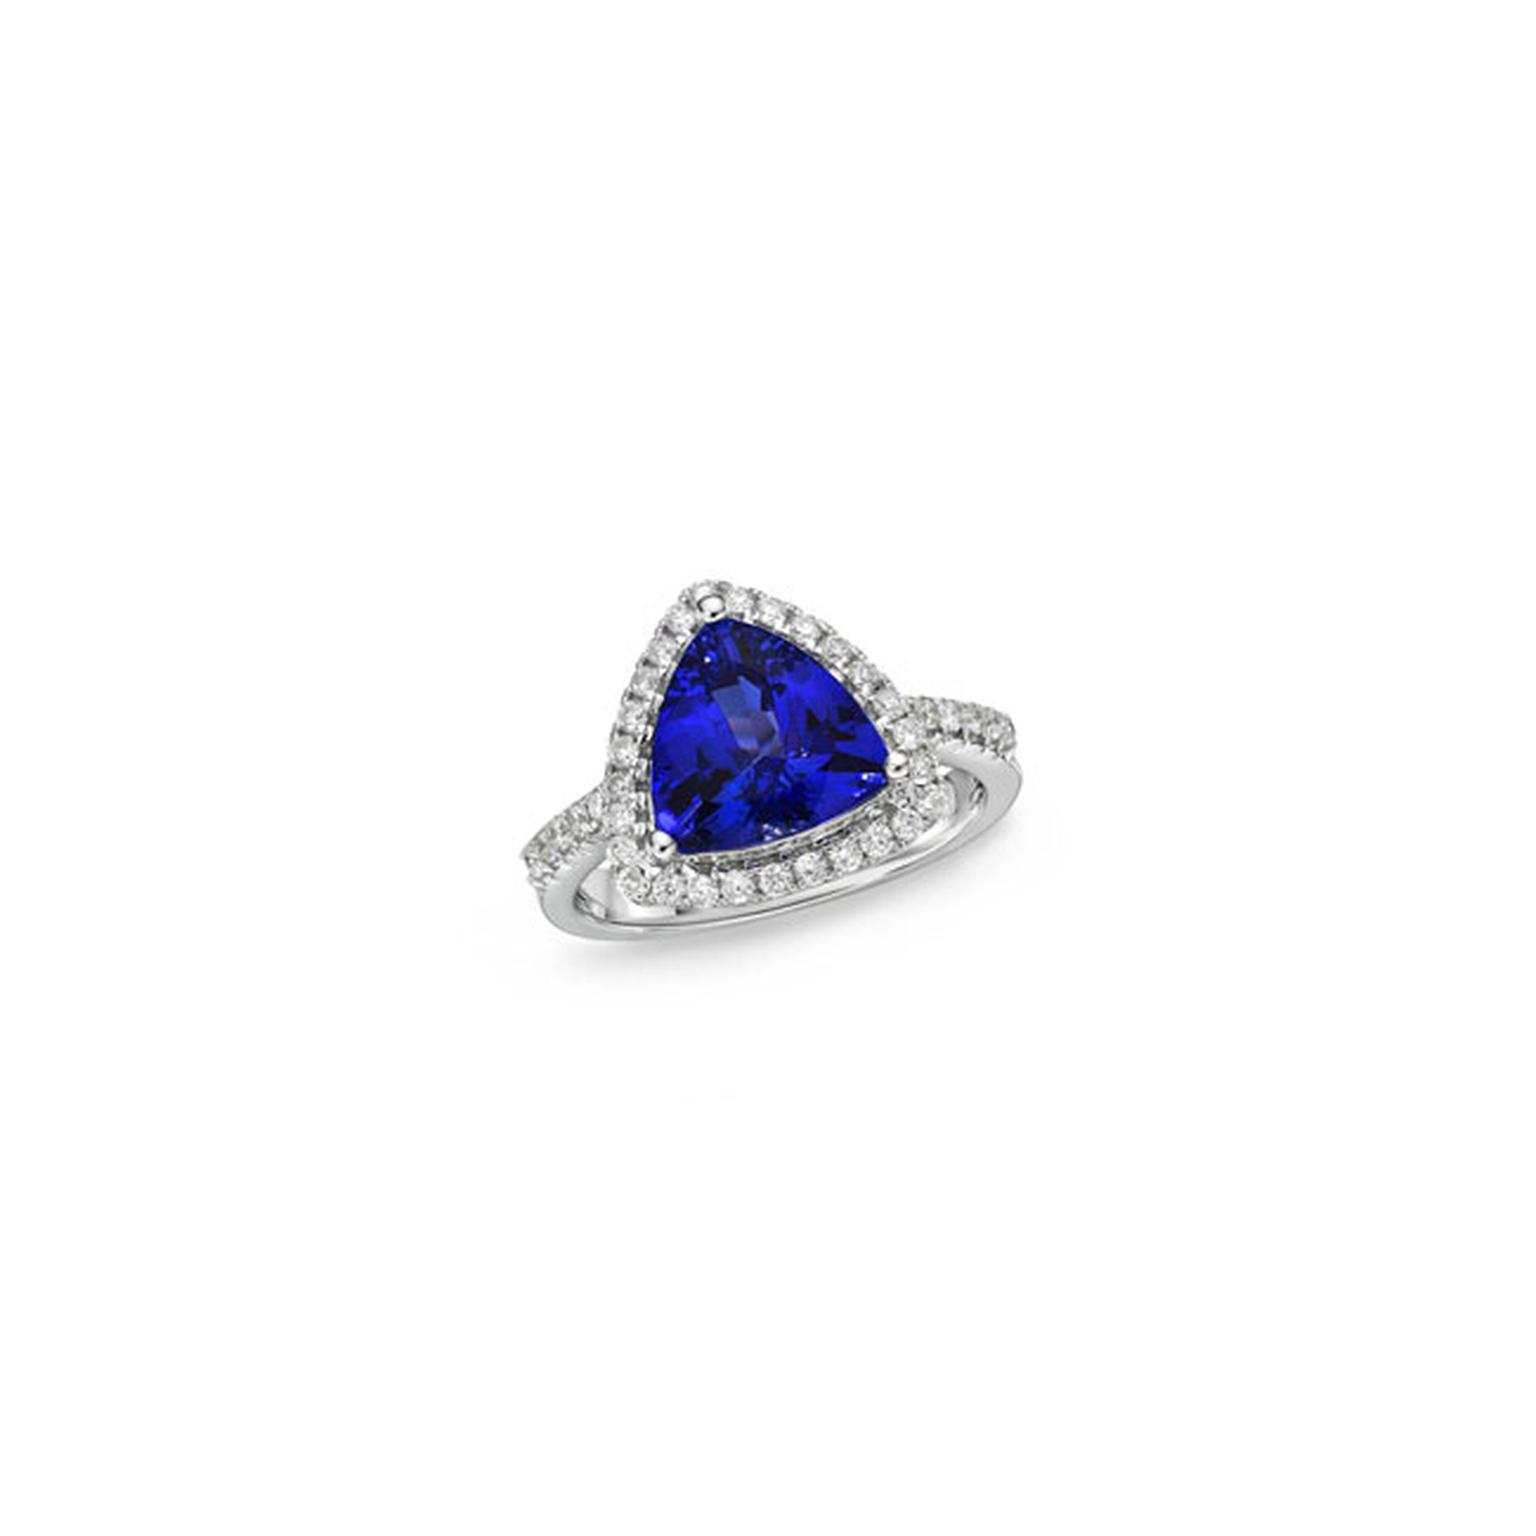 TanzaniteOne trillion tanzanite and diamond ring_main